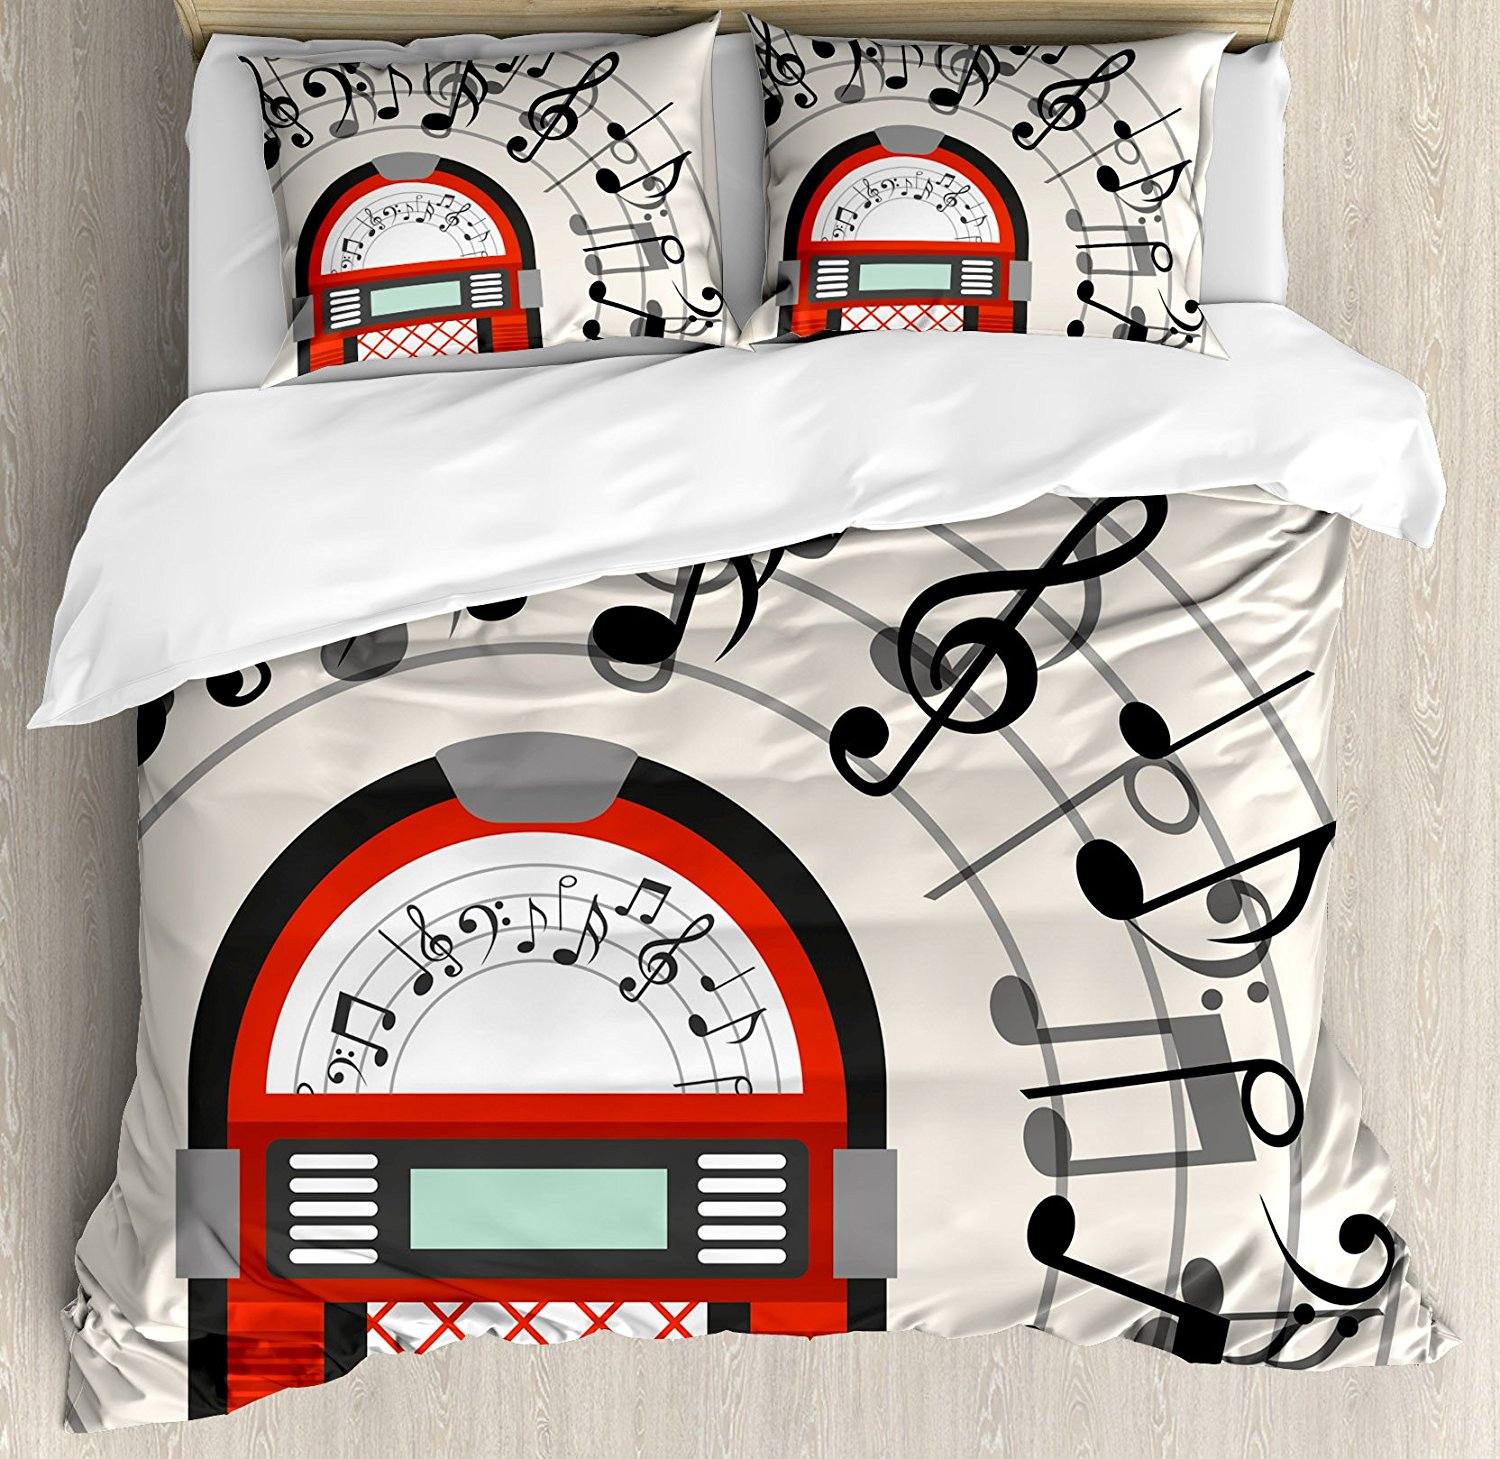 Jukebox Duvet Cover Set Cartoon Antique Old Vintage Radio Music Box Party with Notes Artwork, 4 Piece Bedding Set